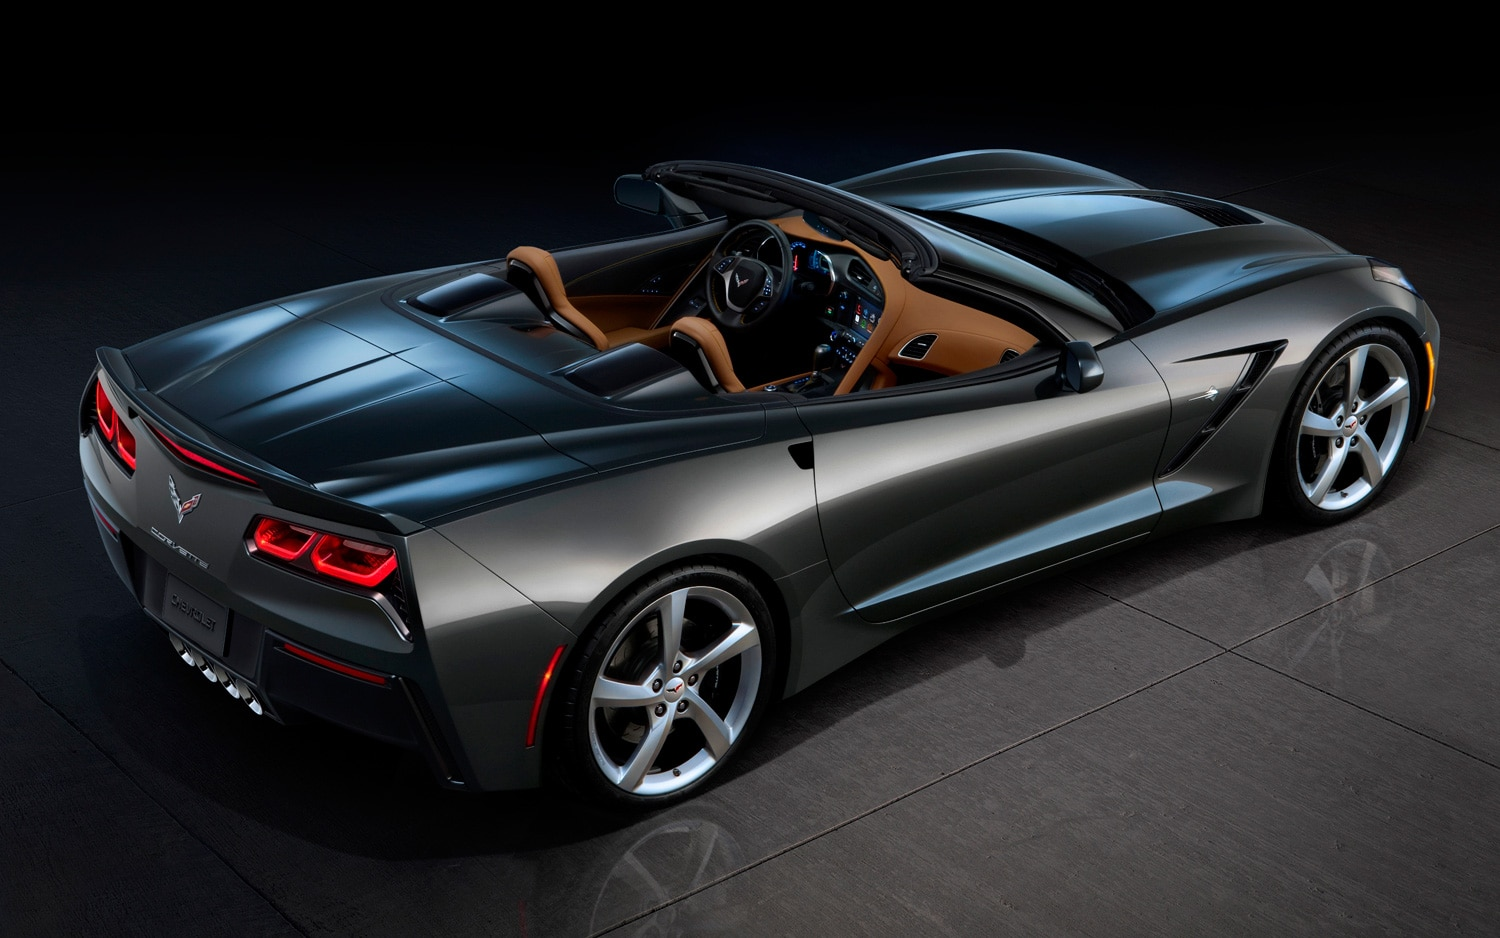 2014 Chevrolet Corvette Stingray Rear Three Quarters View Top Down1